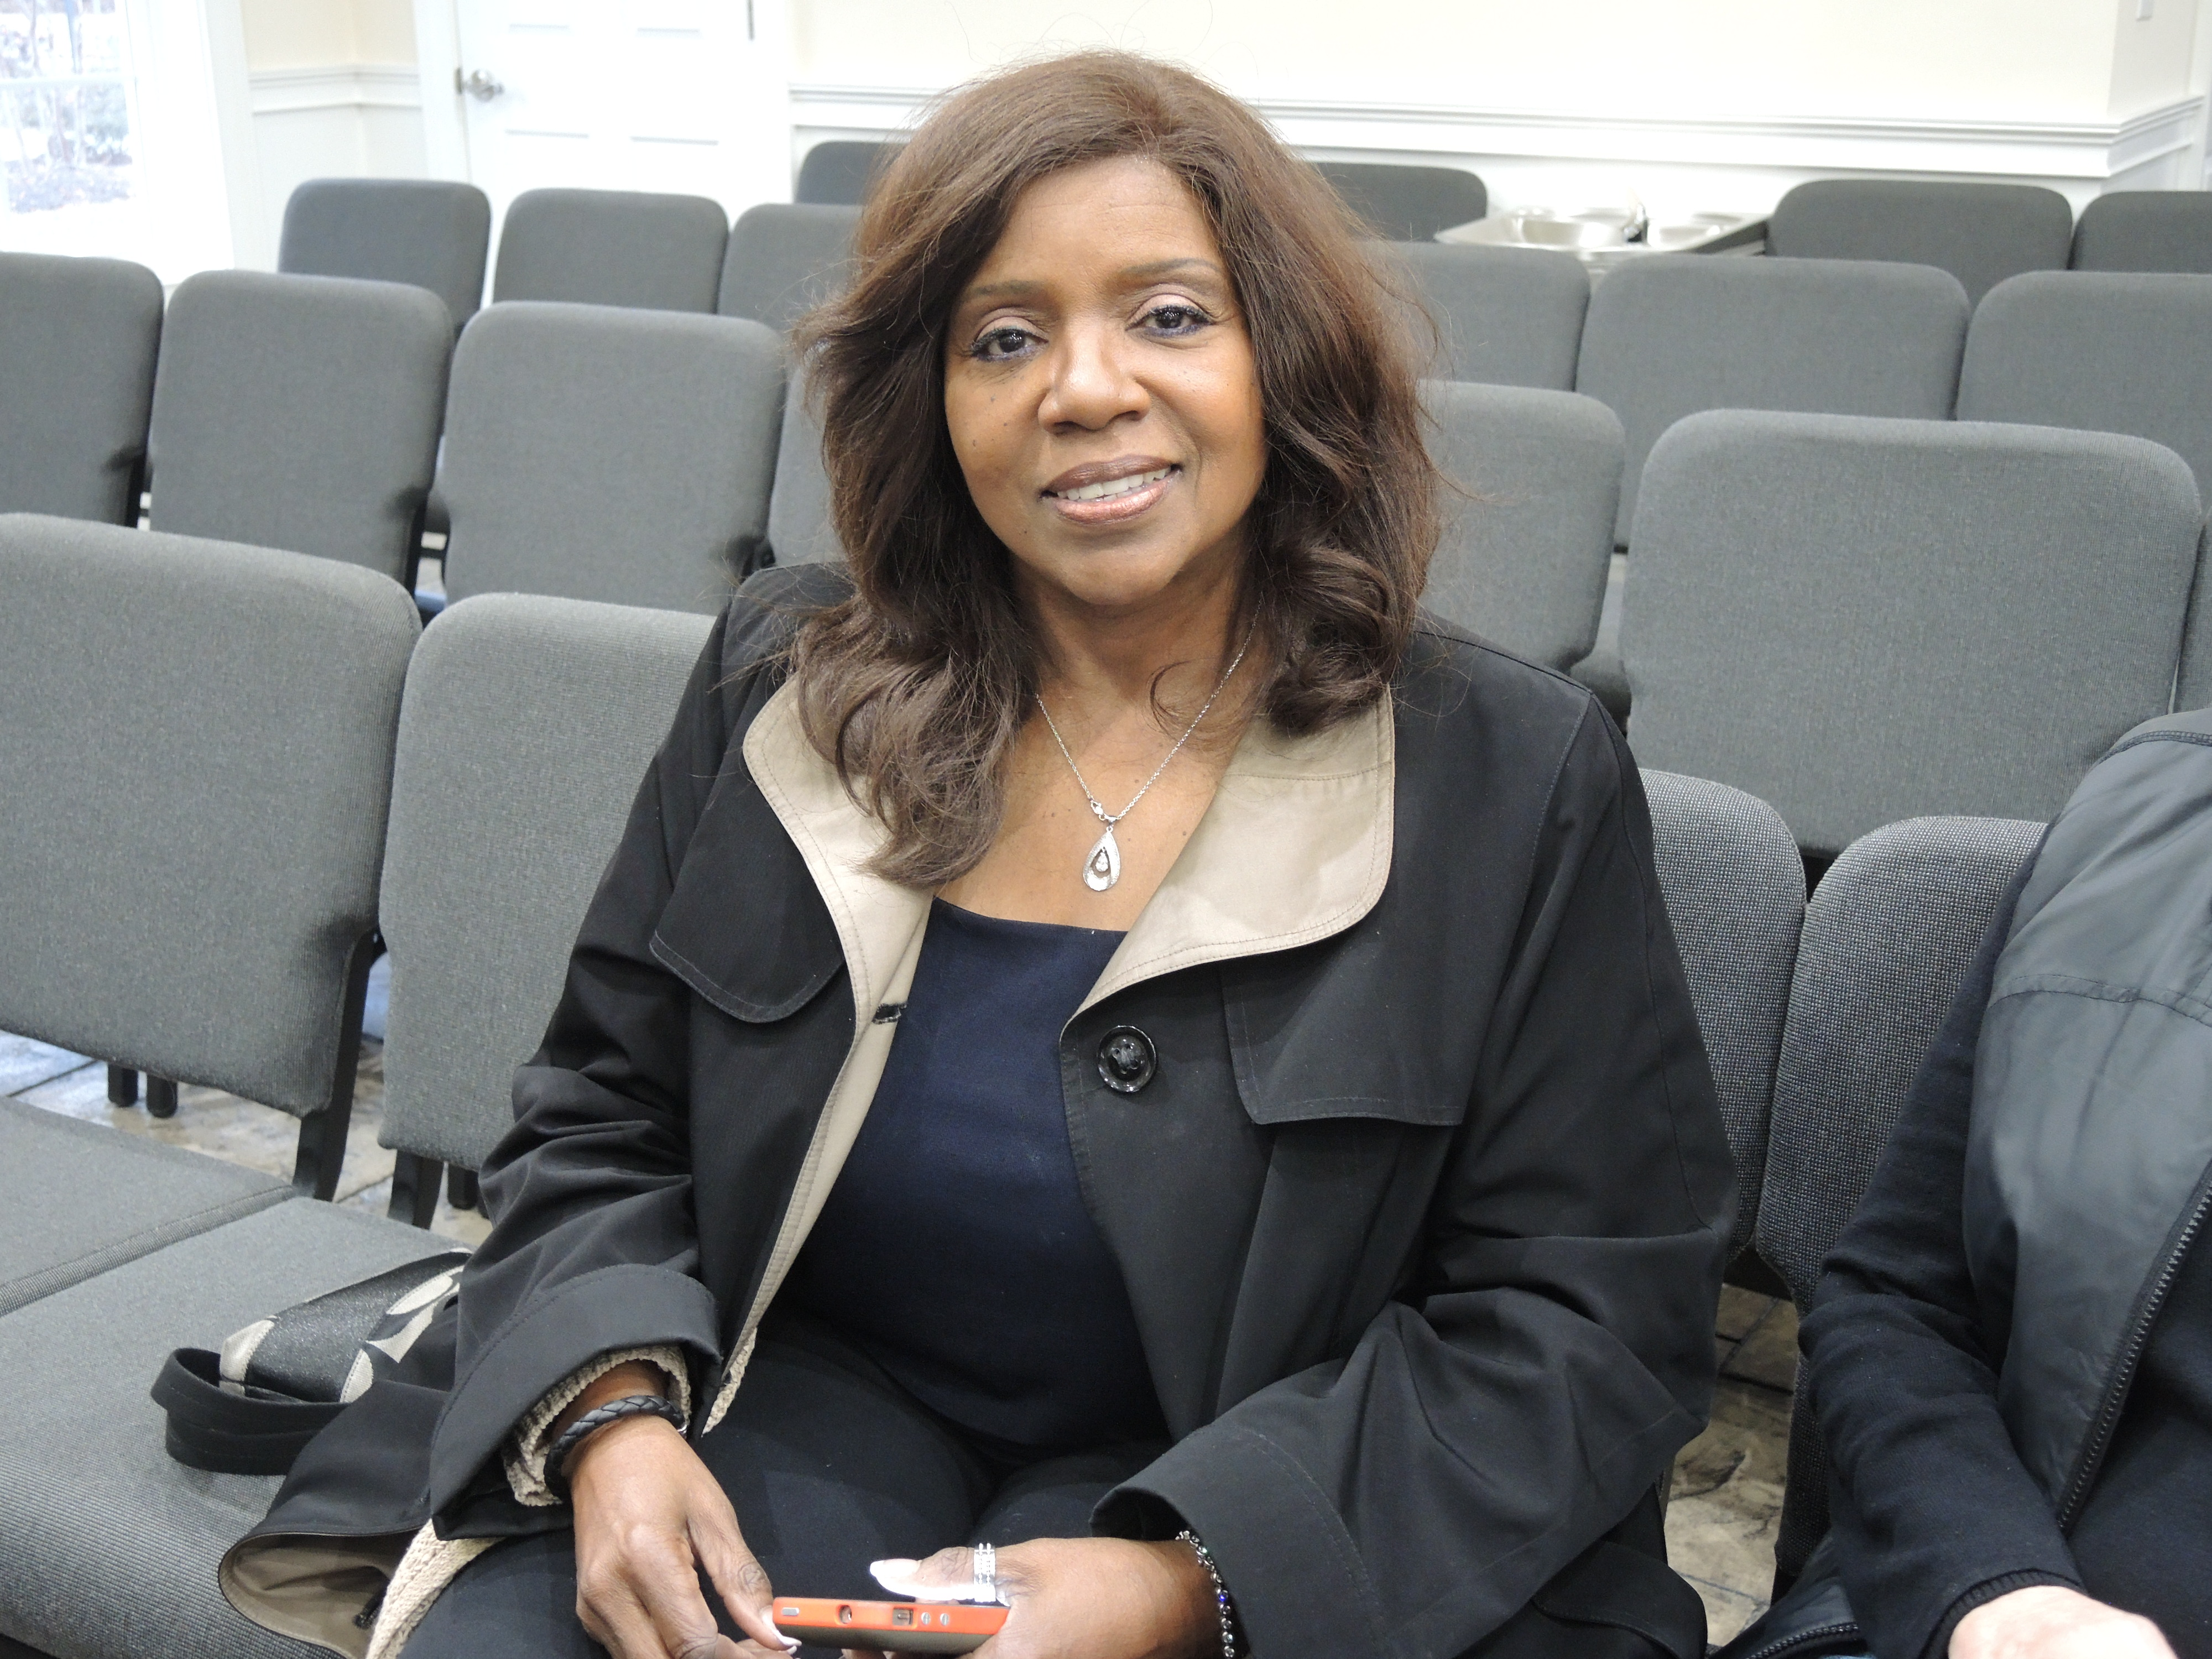 This is the photo I took of Gloria Gaynor before the practice started.